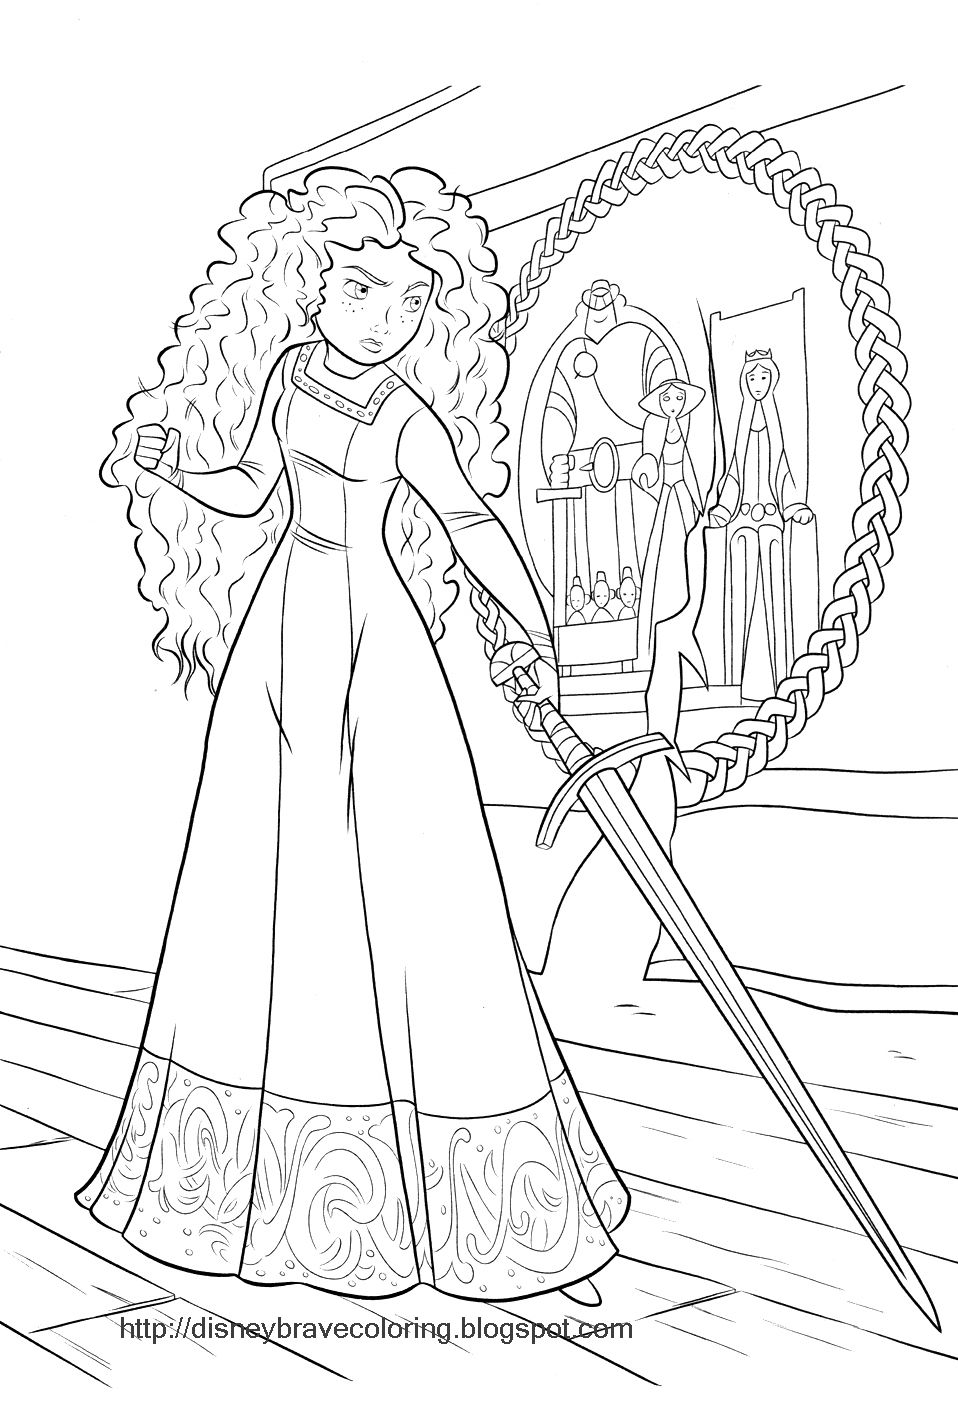 Brave Merida Coloring Pages Disney Princess Coloring Pages Princess Coloring Pages Disney Coloring Pages